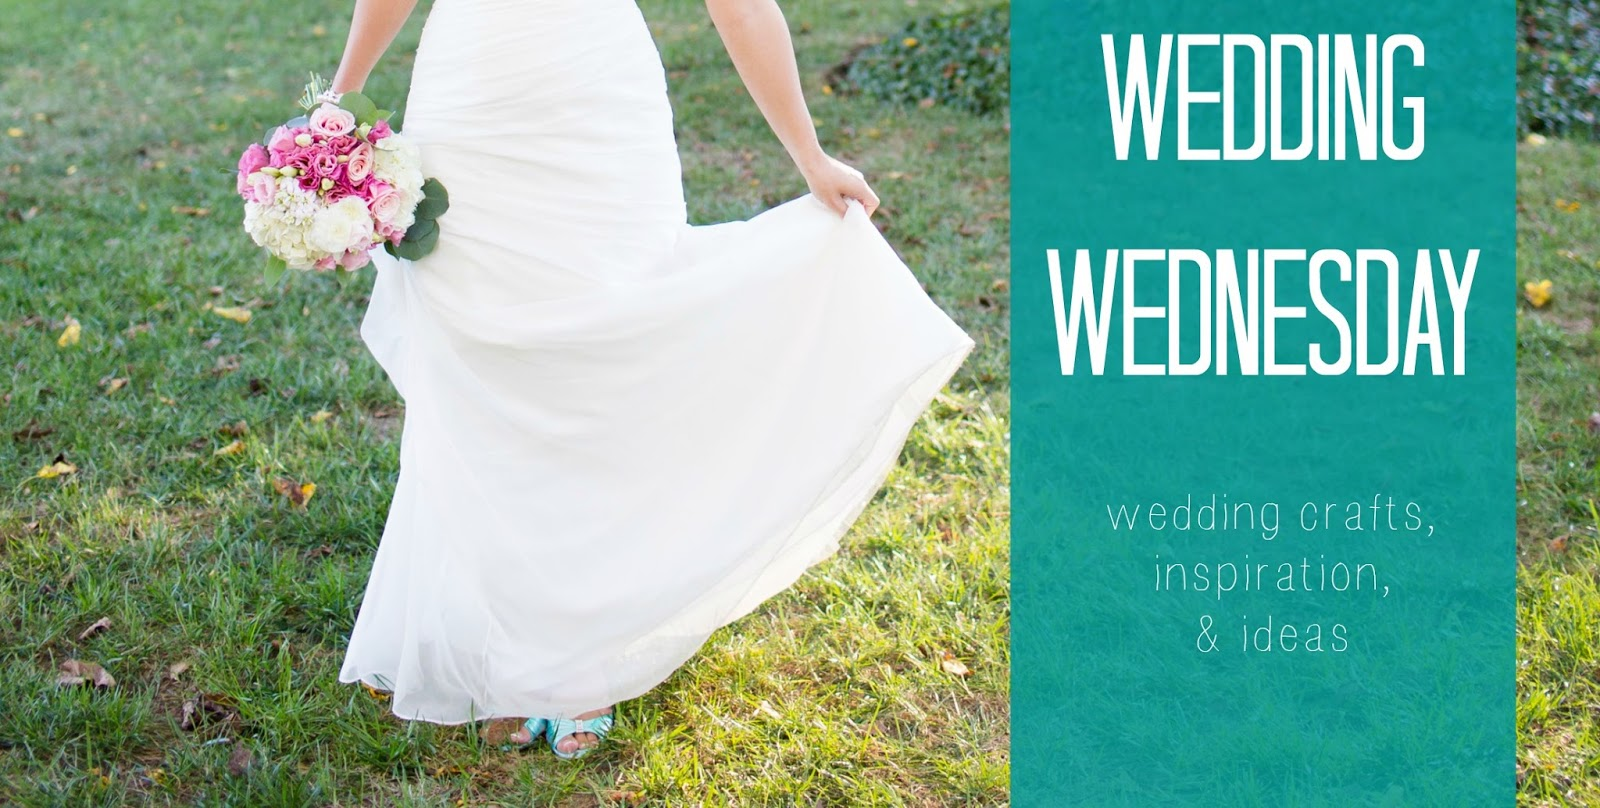 Wedding Wednesday- Wedding crafts, inspiration & ideas | Meet the B's